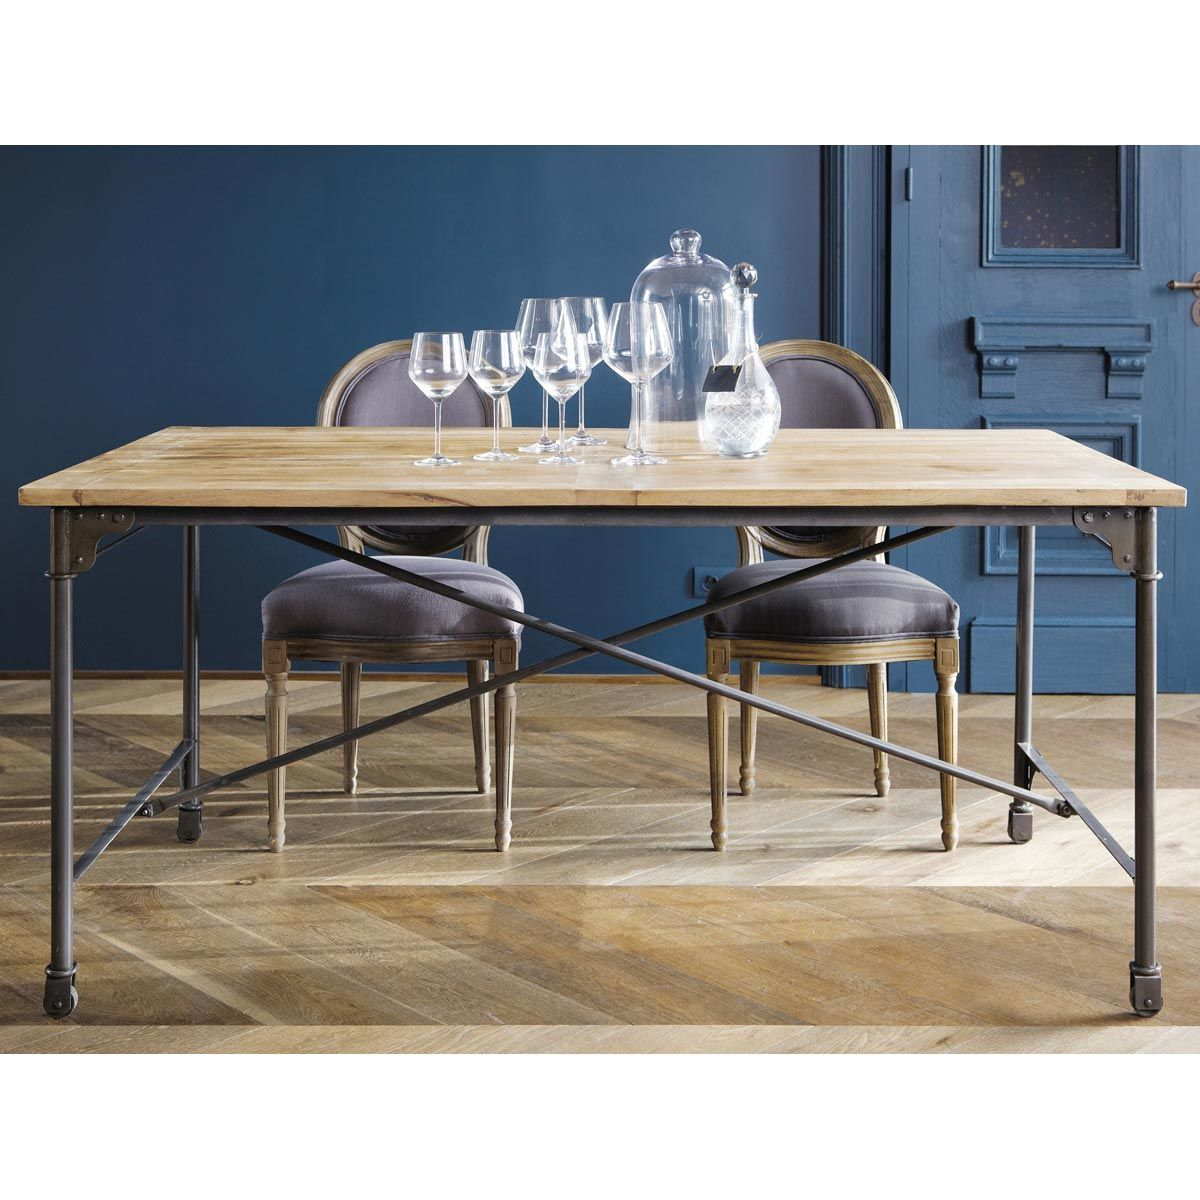 solid-mango-wood-and-metal-dining-table-w-170cm-1500-10-32-122376_6.jpg